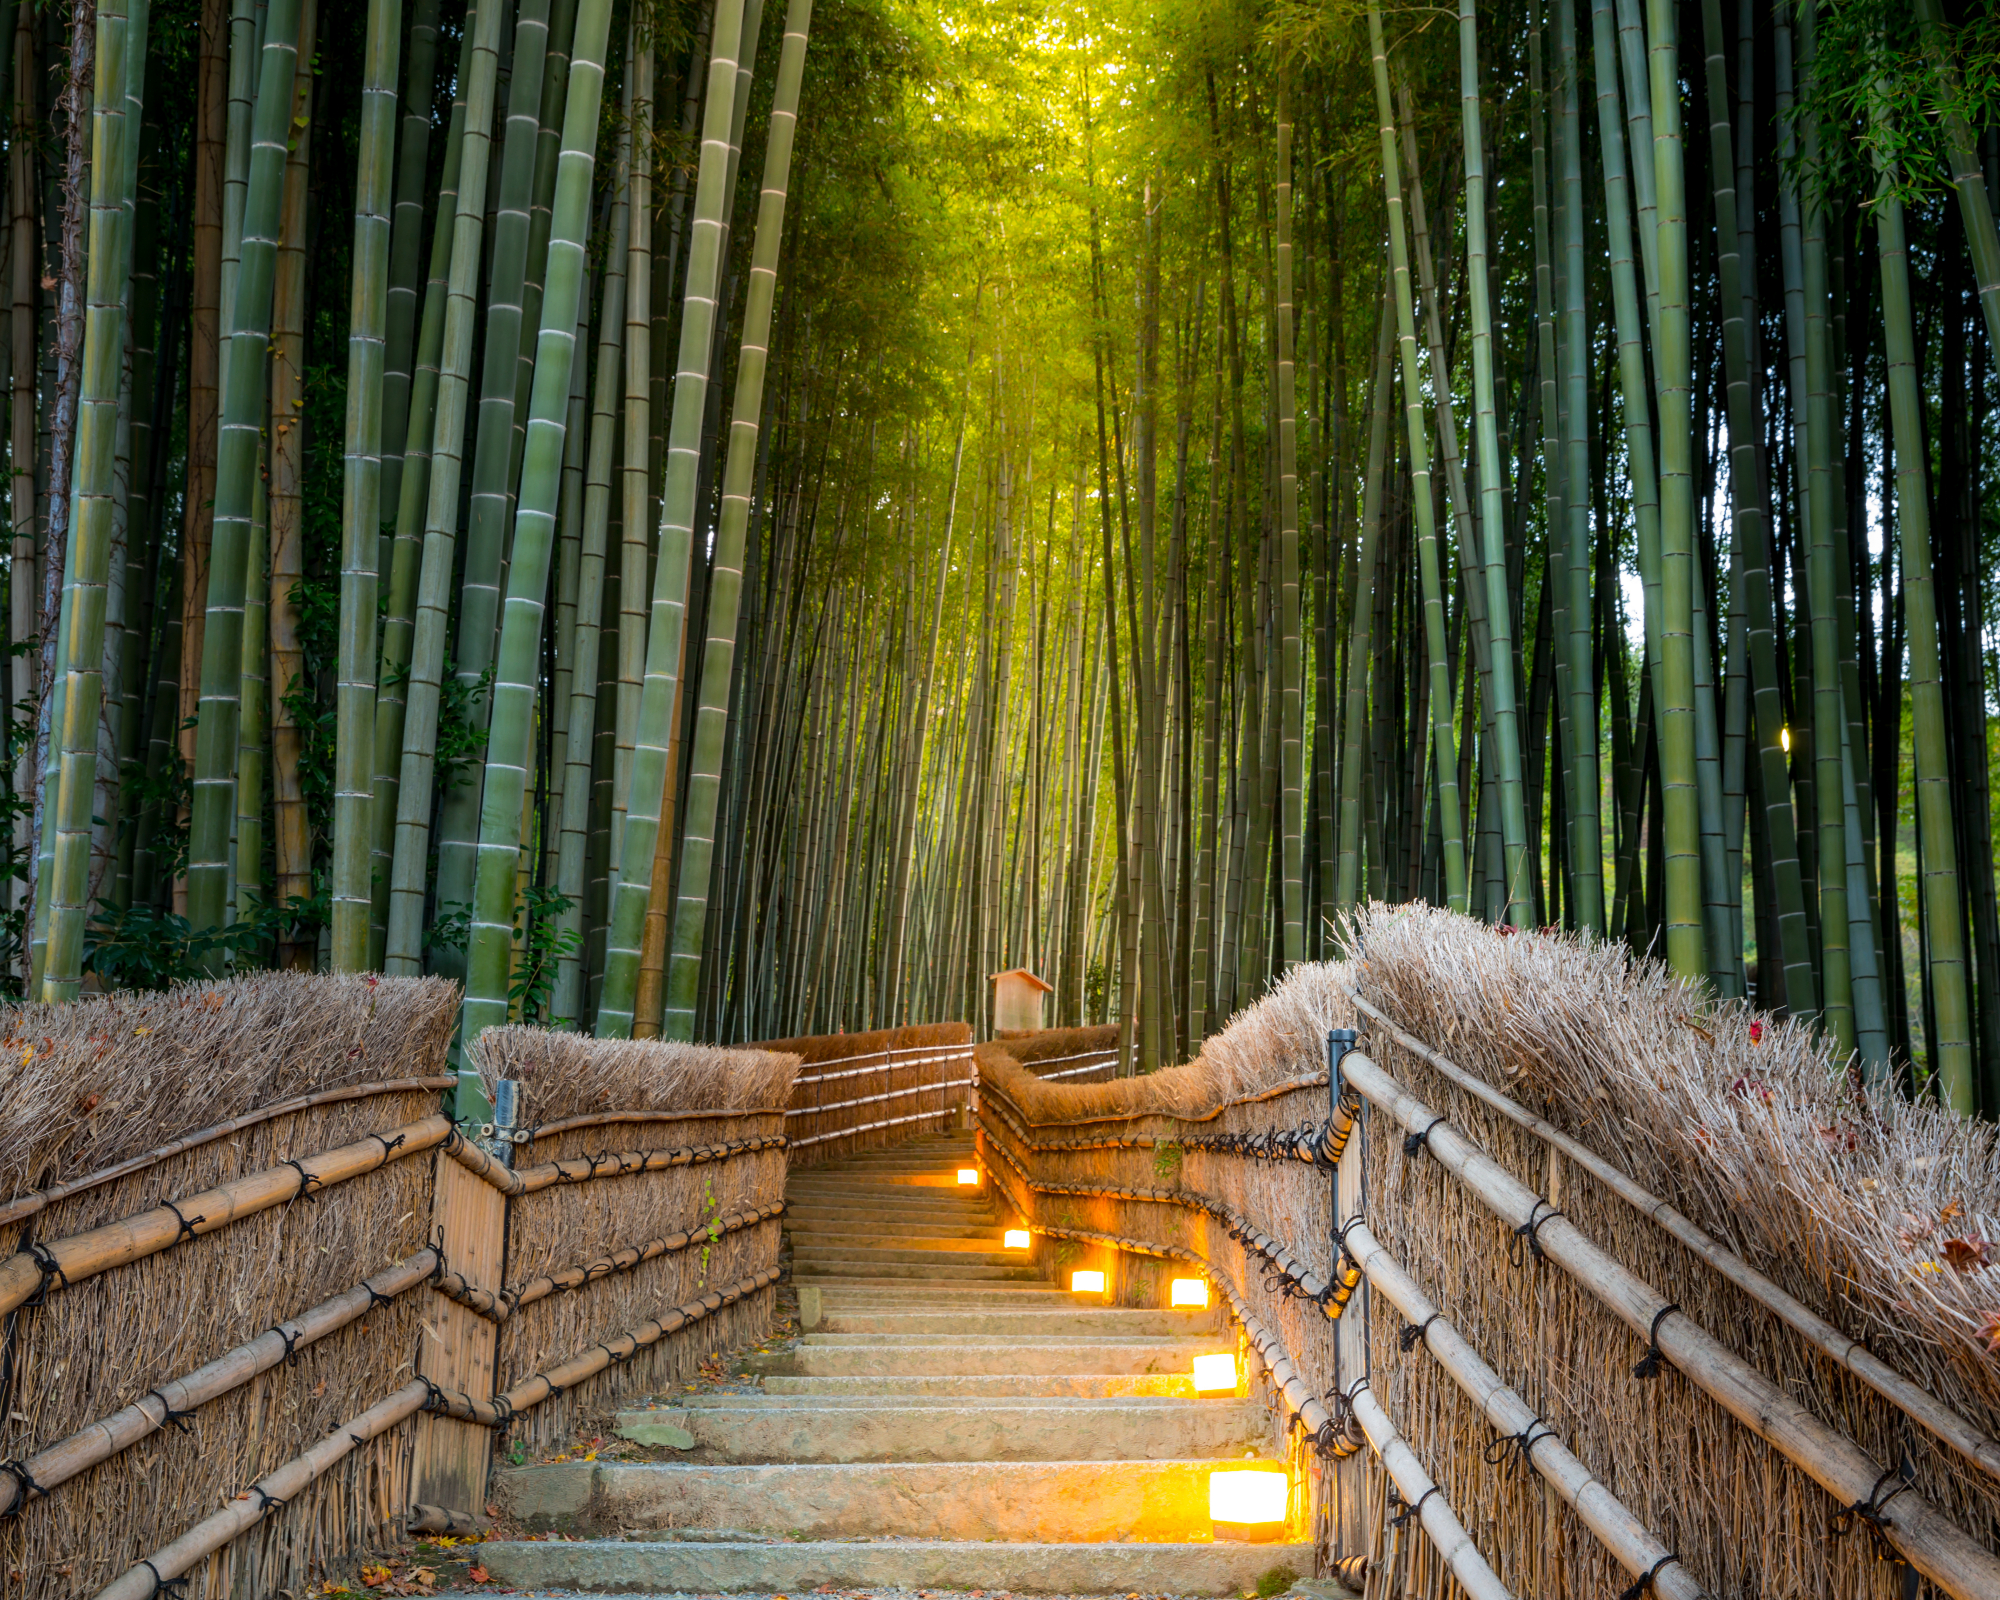 Stairway through bamboo forest